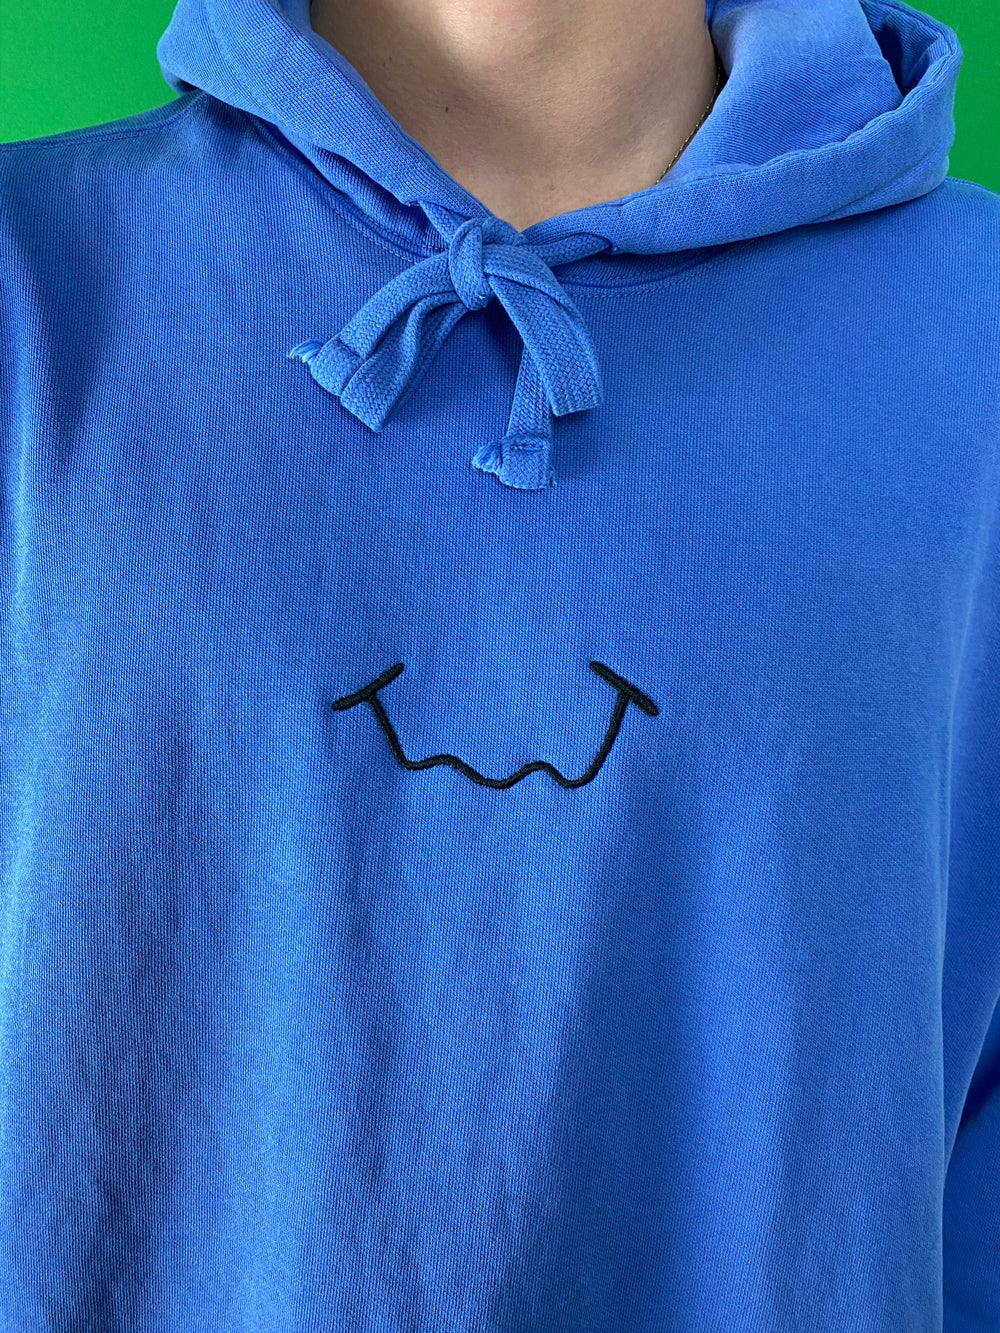 Image of Mixed Emotions Hoodie